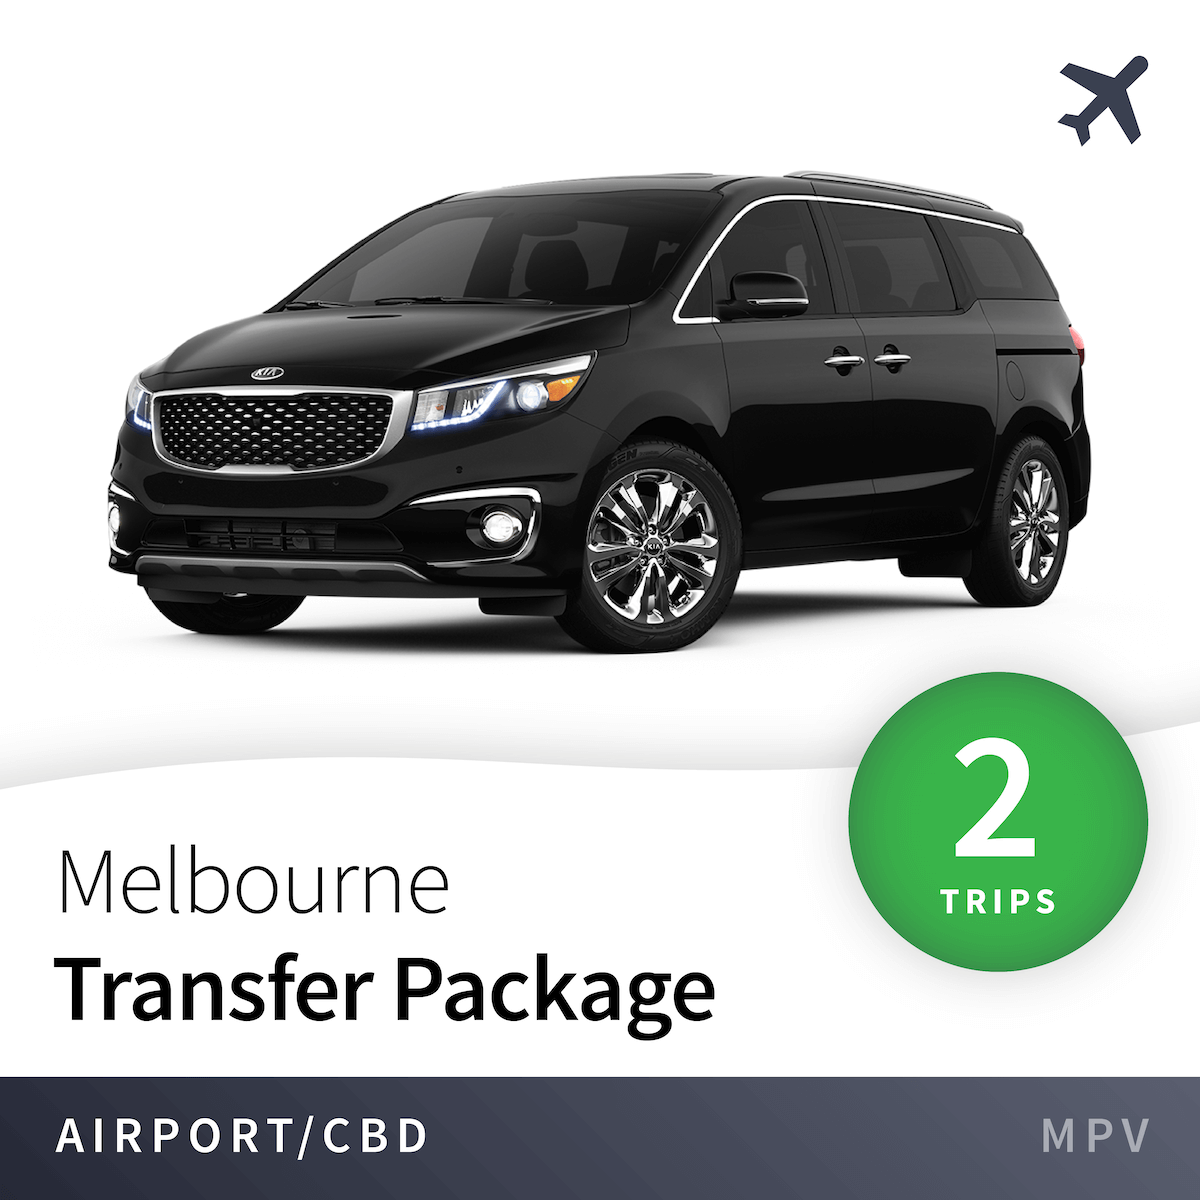 Melbourne Airport Transfer Package - MPV (2 Trips) 9